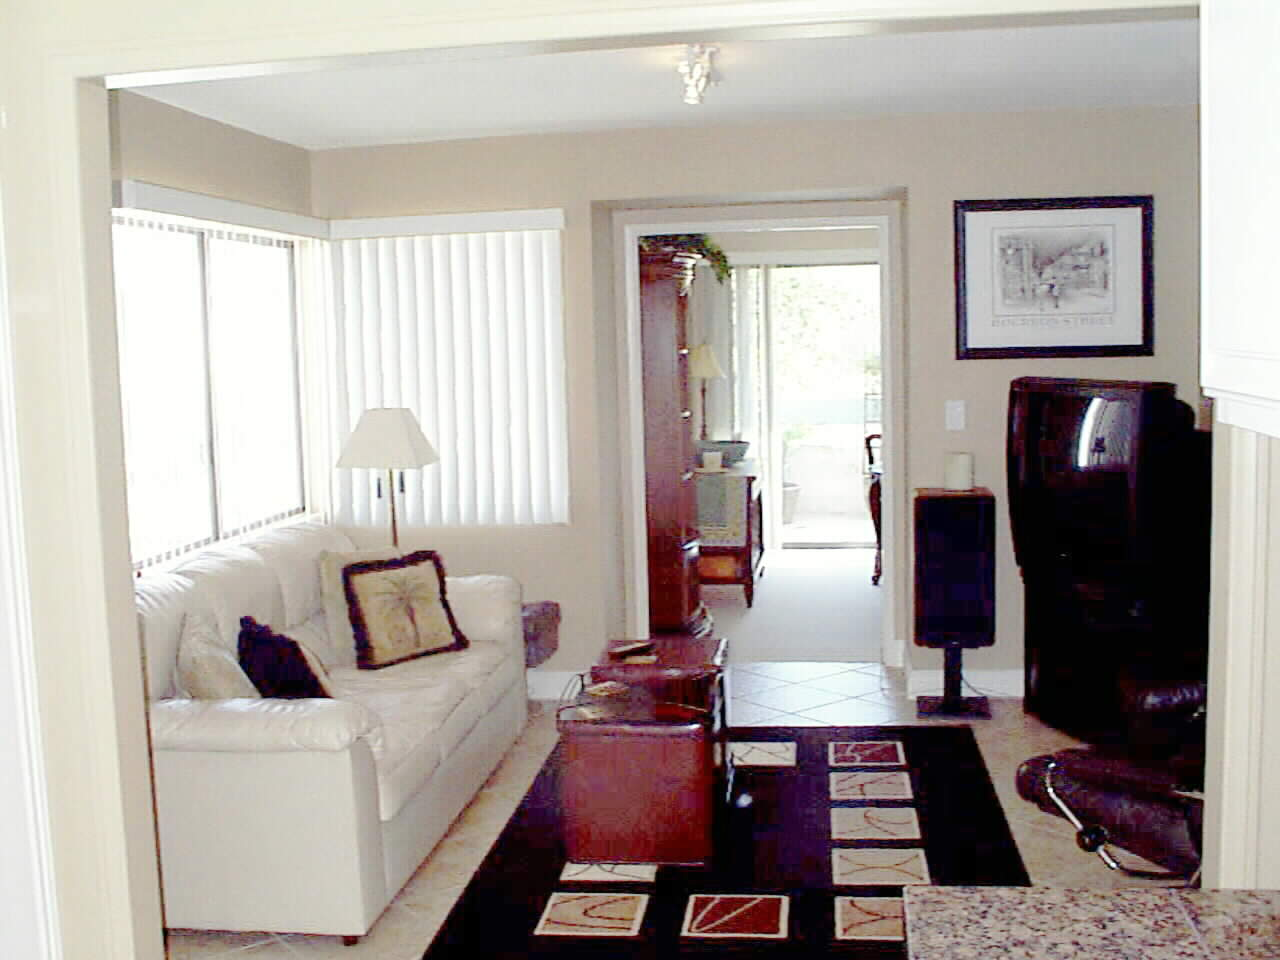 With the remodel... an open inviting Family Room is created!